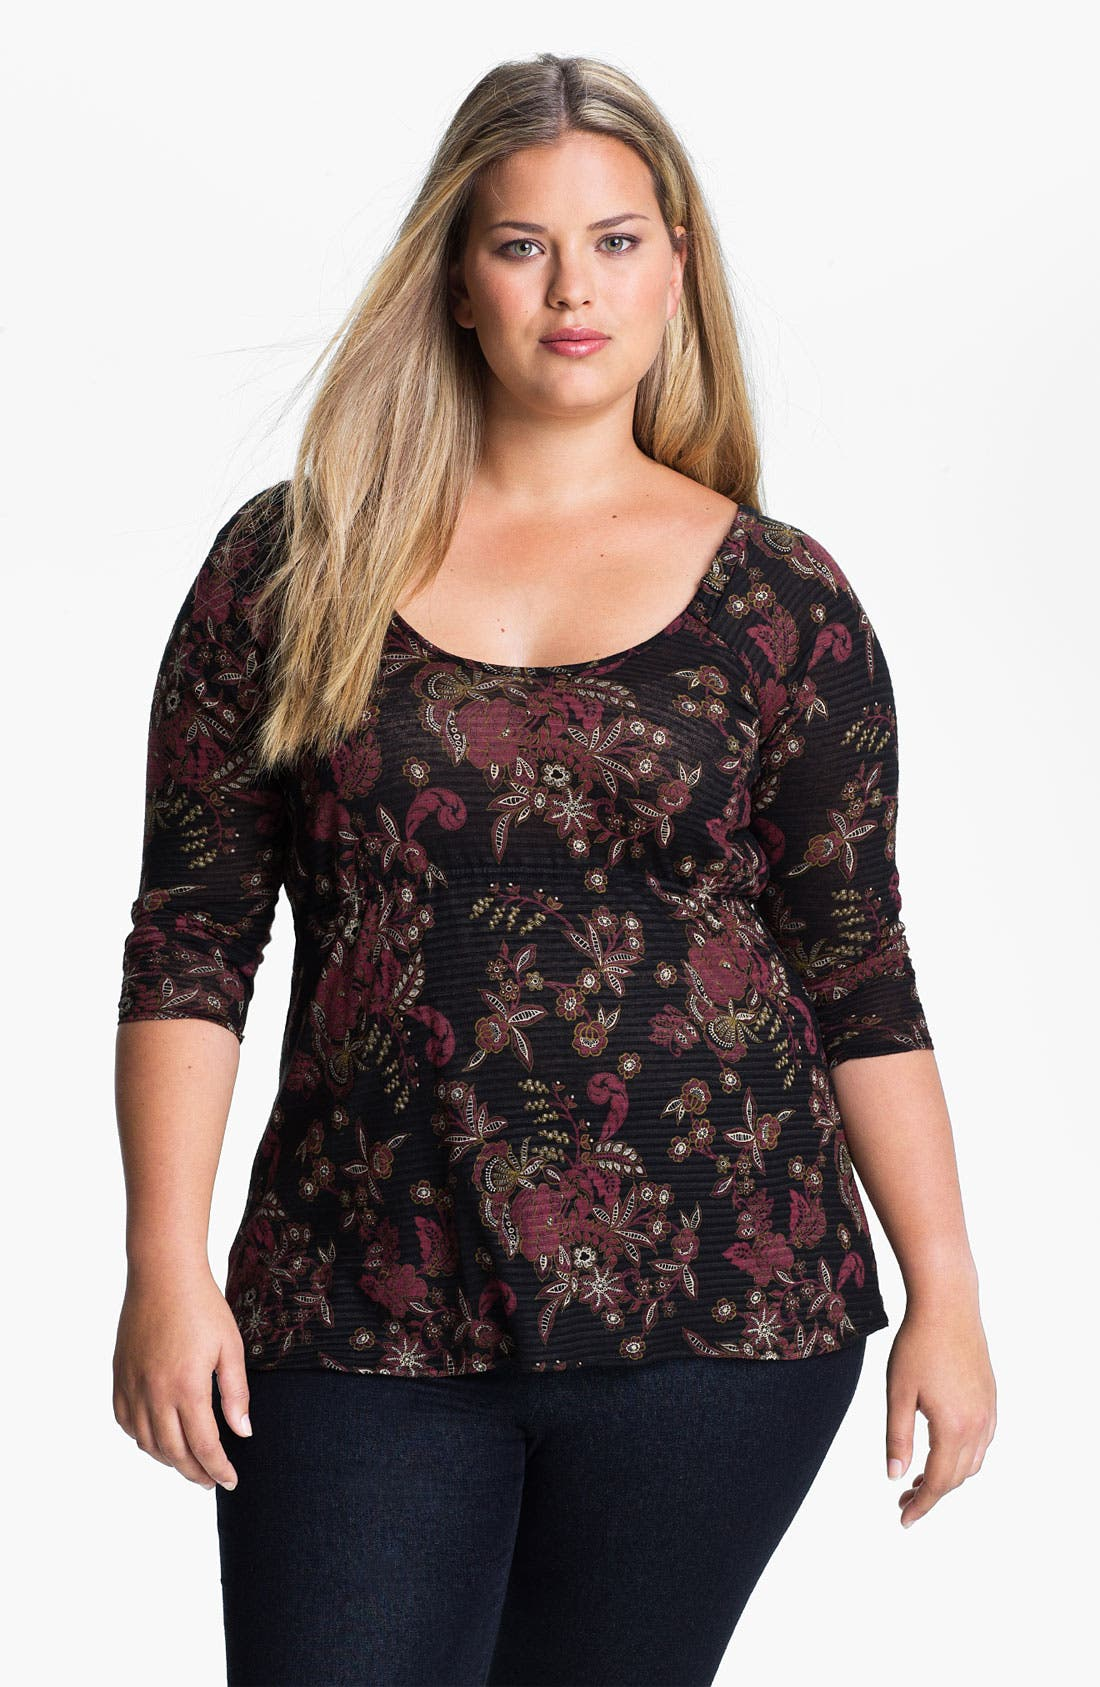 Main Image - Lucky Brand 'Lace Shadows Hera' Top (Plus)